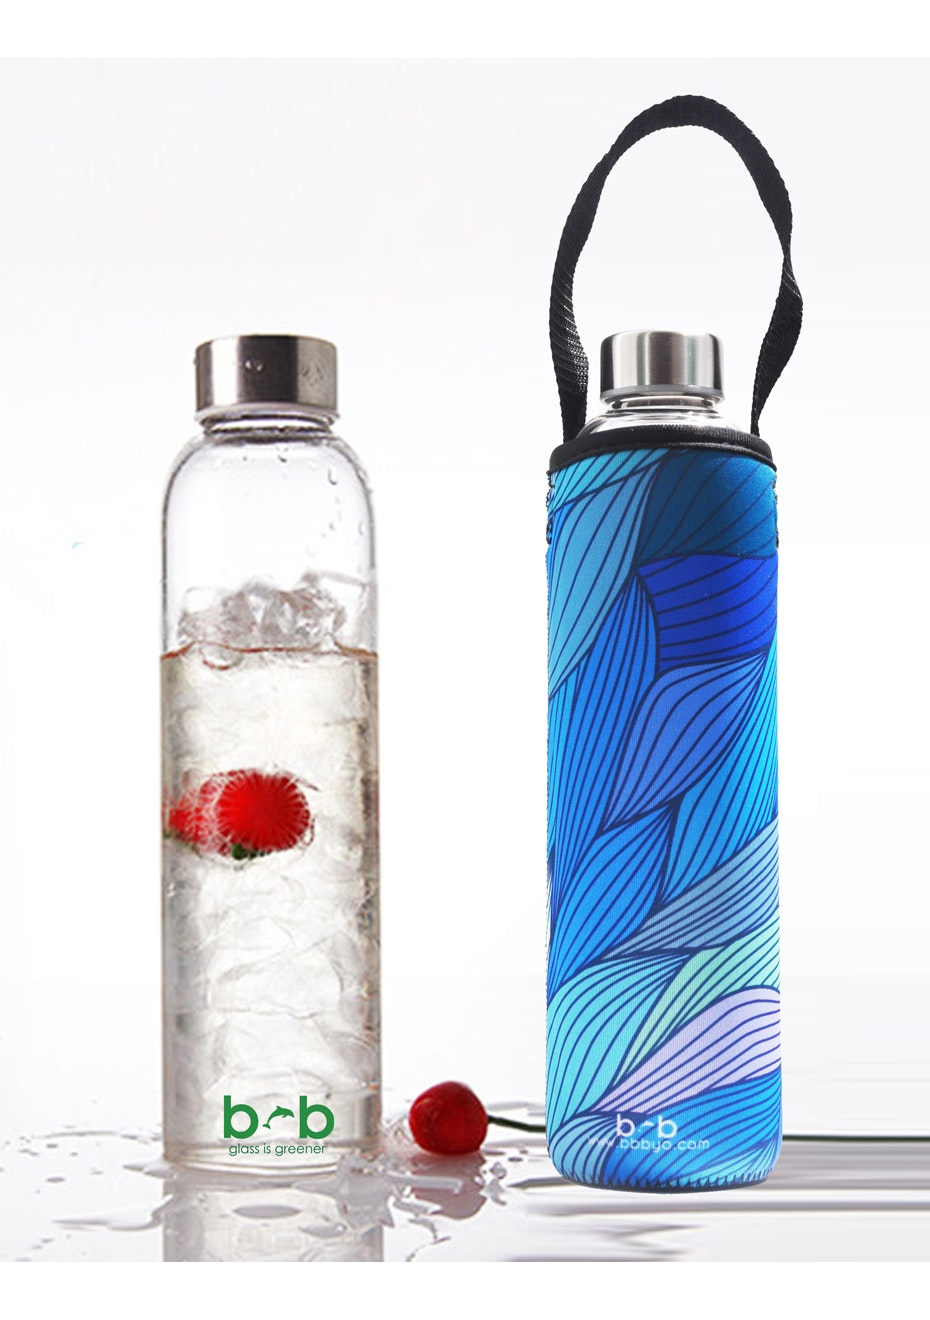 BBBYO - Glass Is Greener Bottle 750 ml + Carry Cover (Tide Print) -750 ml